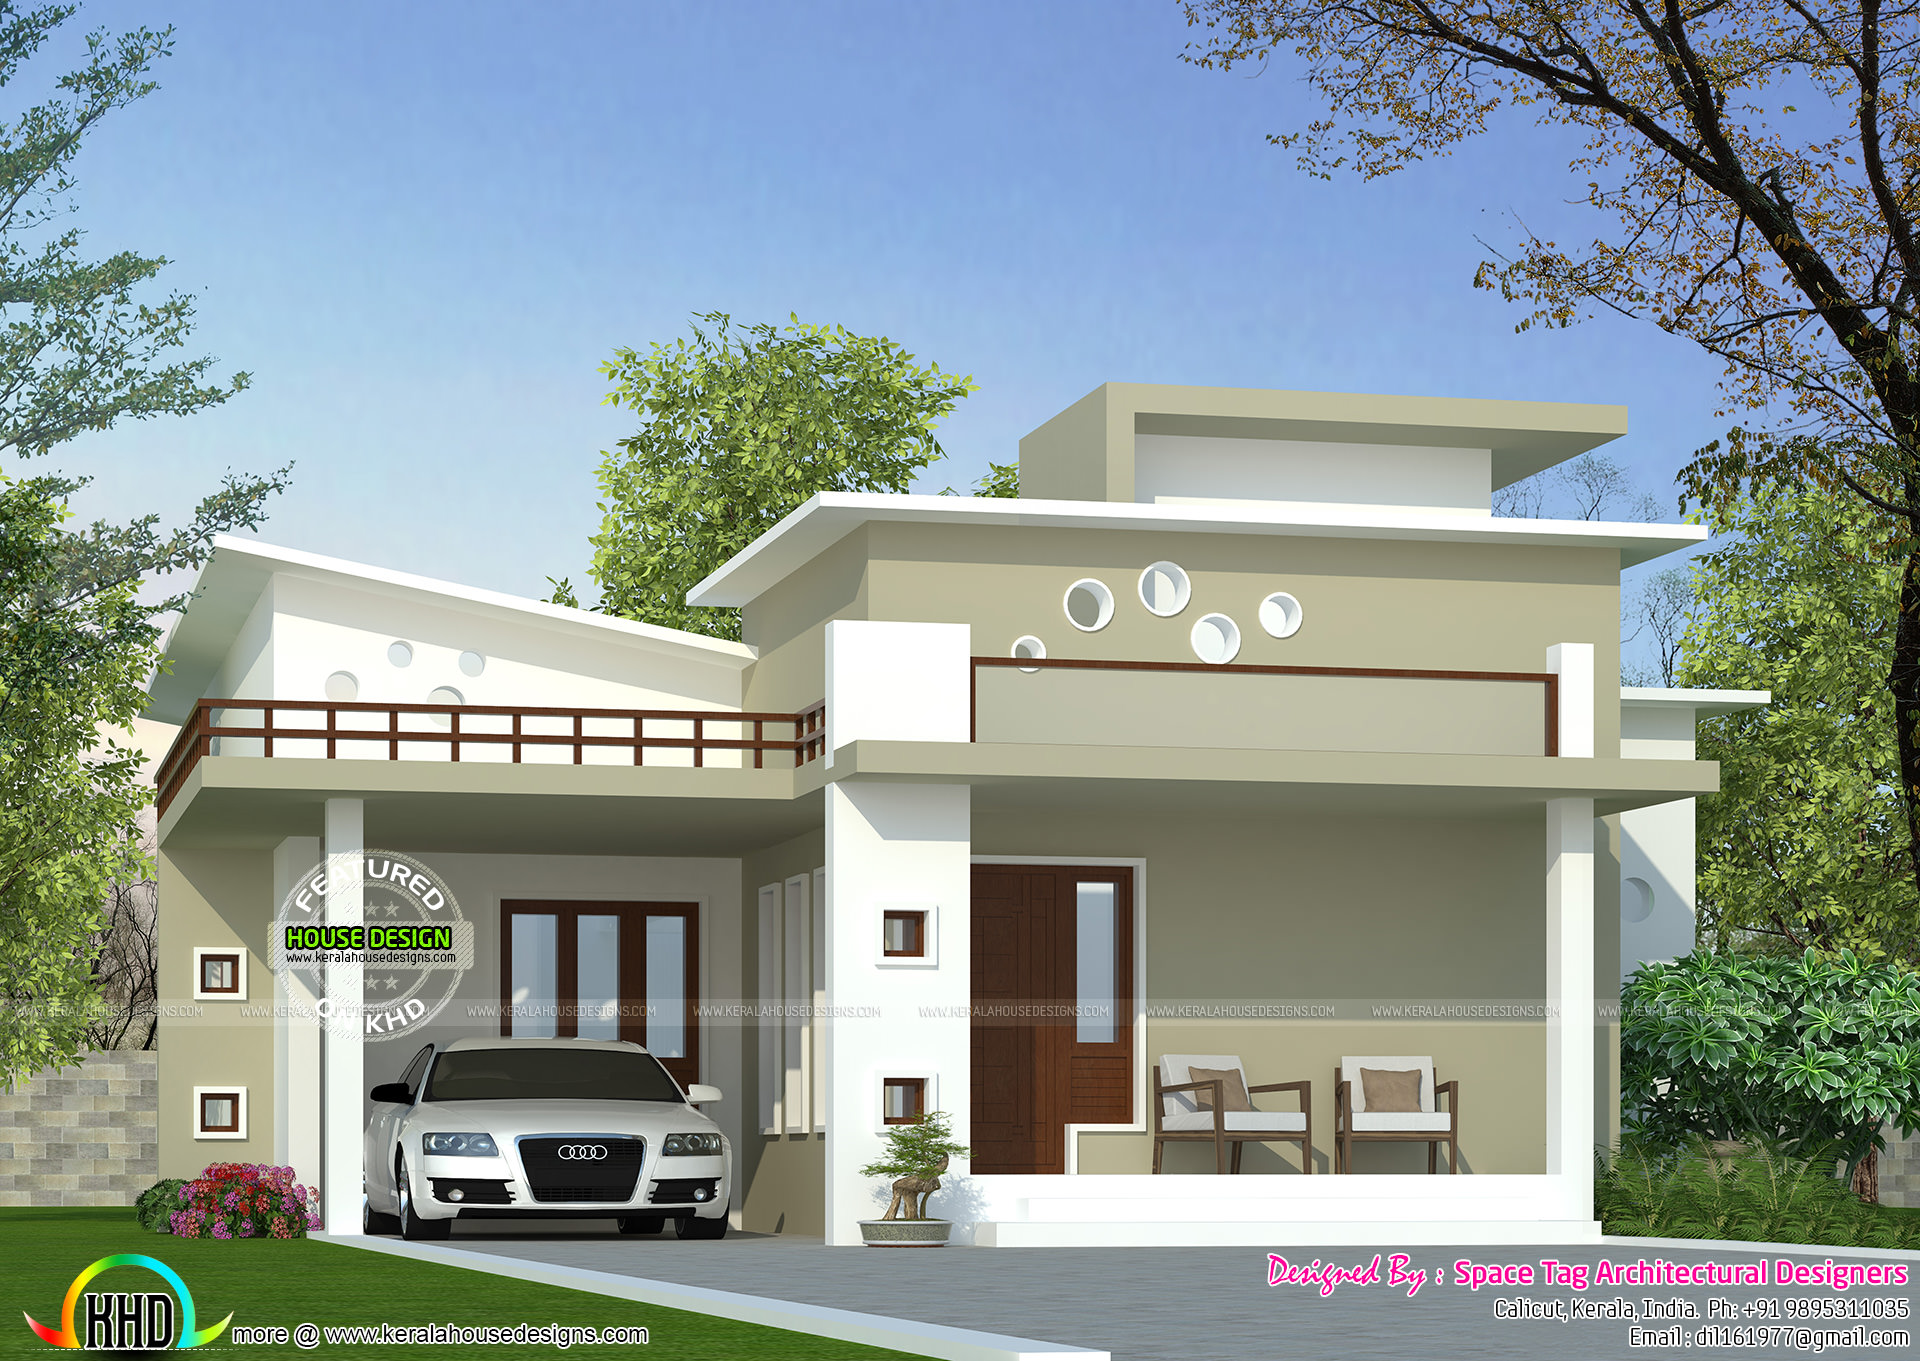 Low cost kerala home design kerala home design and floor Low cost interior design for homes in kerala